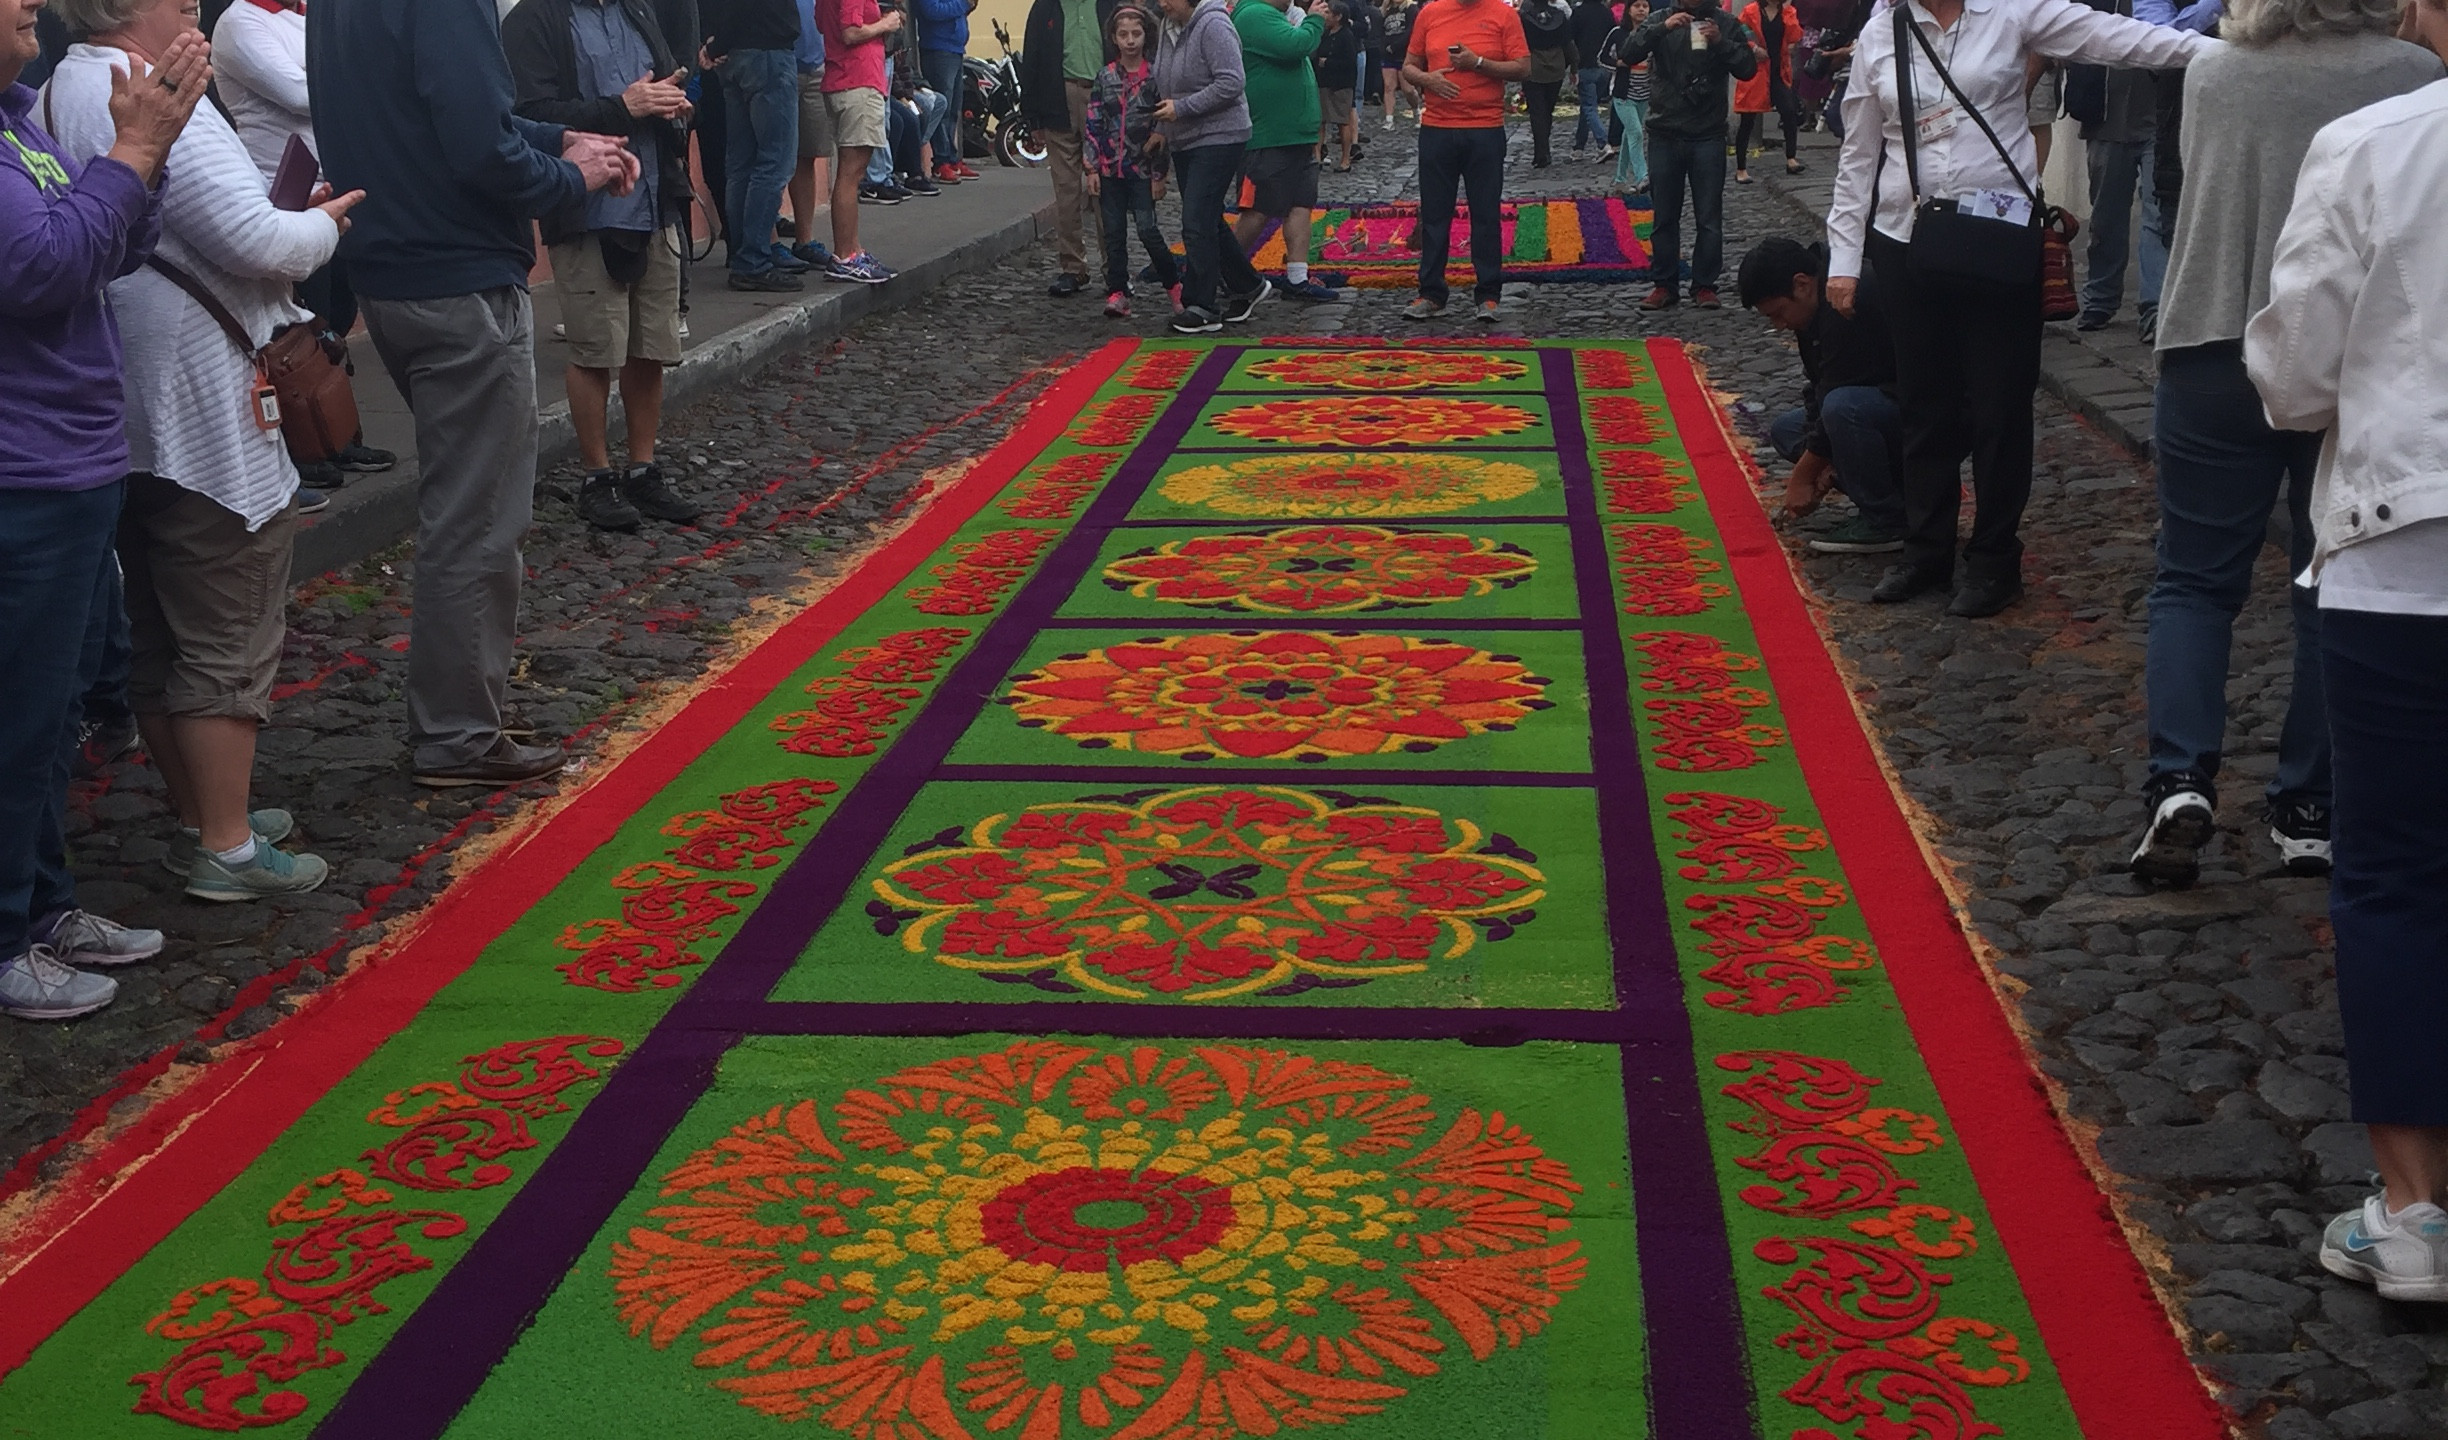 Admirers viewing the alfombras